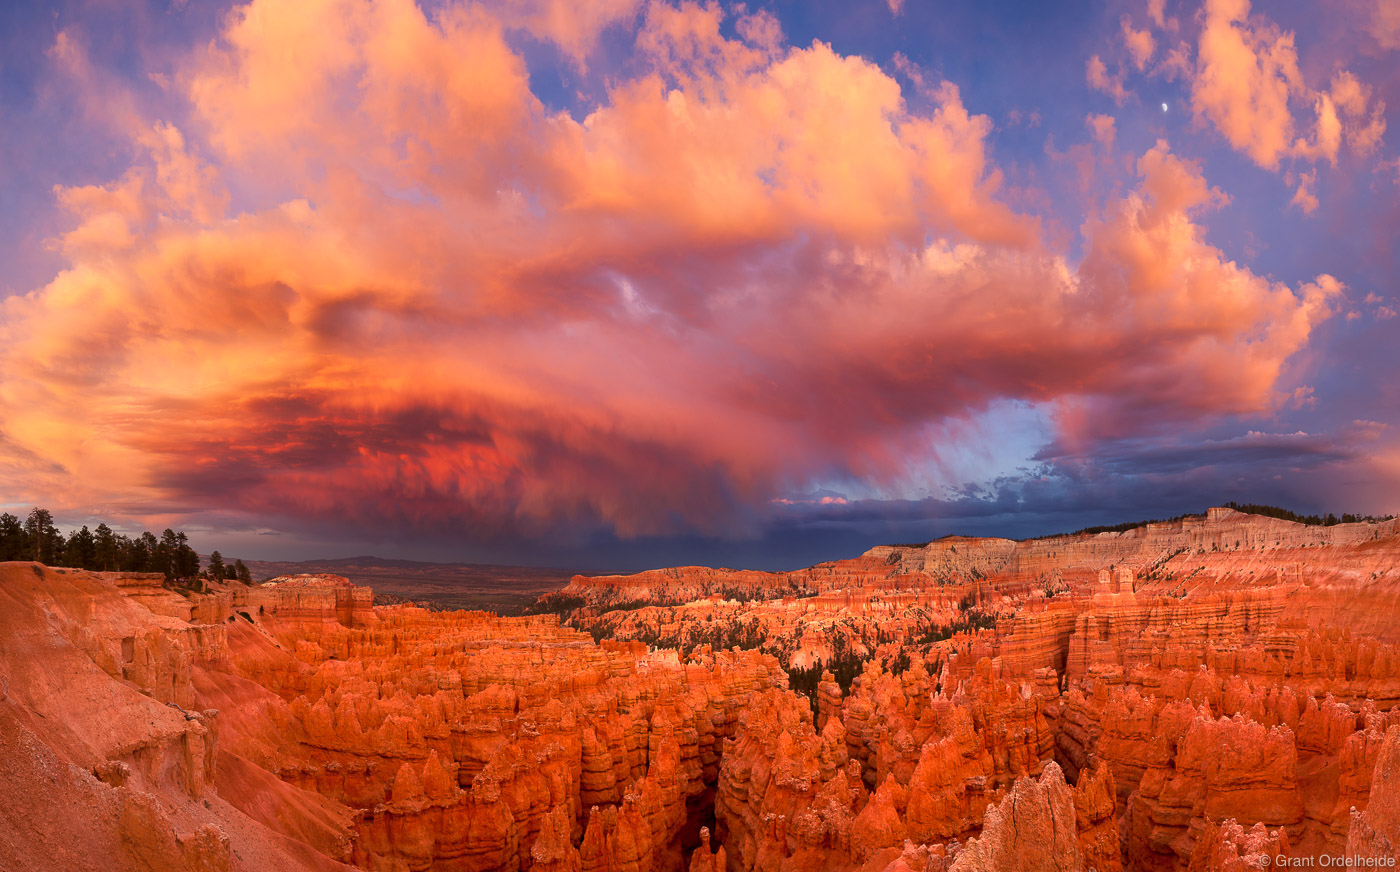 A dramatic storm cloud builds over the hoodoos of Bryce Canyon National Park.